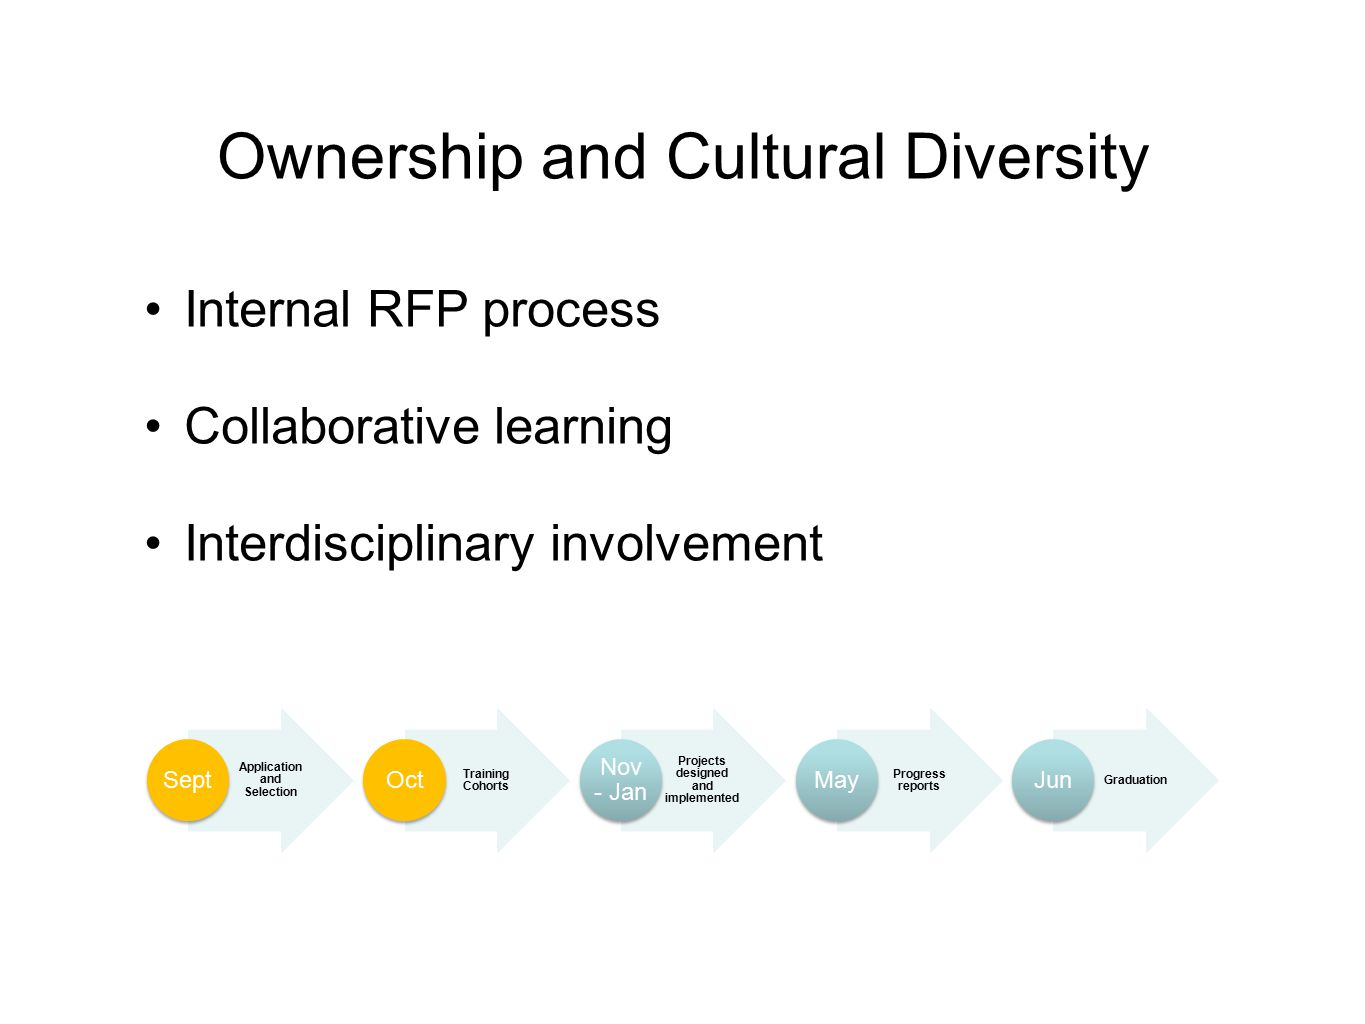 Ownership and Cultural Diversity Internal RFP process Collaborative learning Interdisciplinary involvement Application and Selection Sept Training Cohorts Oct Projects designed and implemented Nov - Jan Progress reports May Graduation Jun